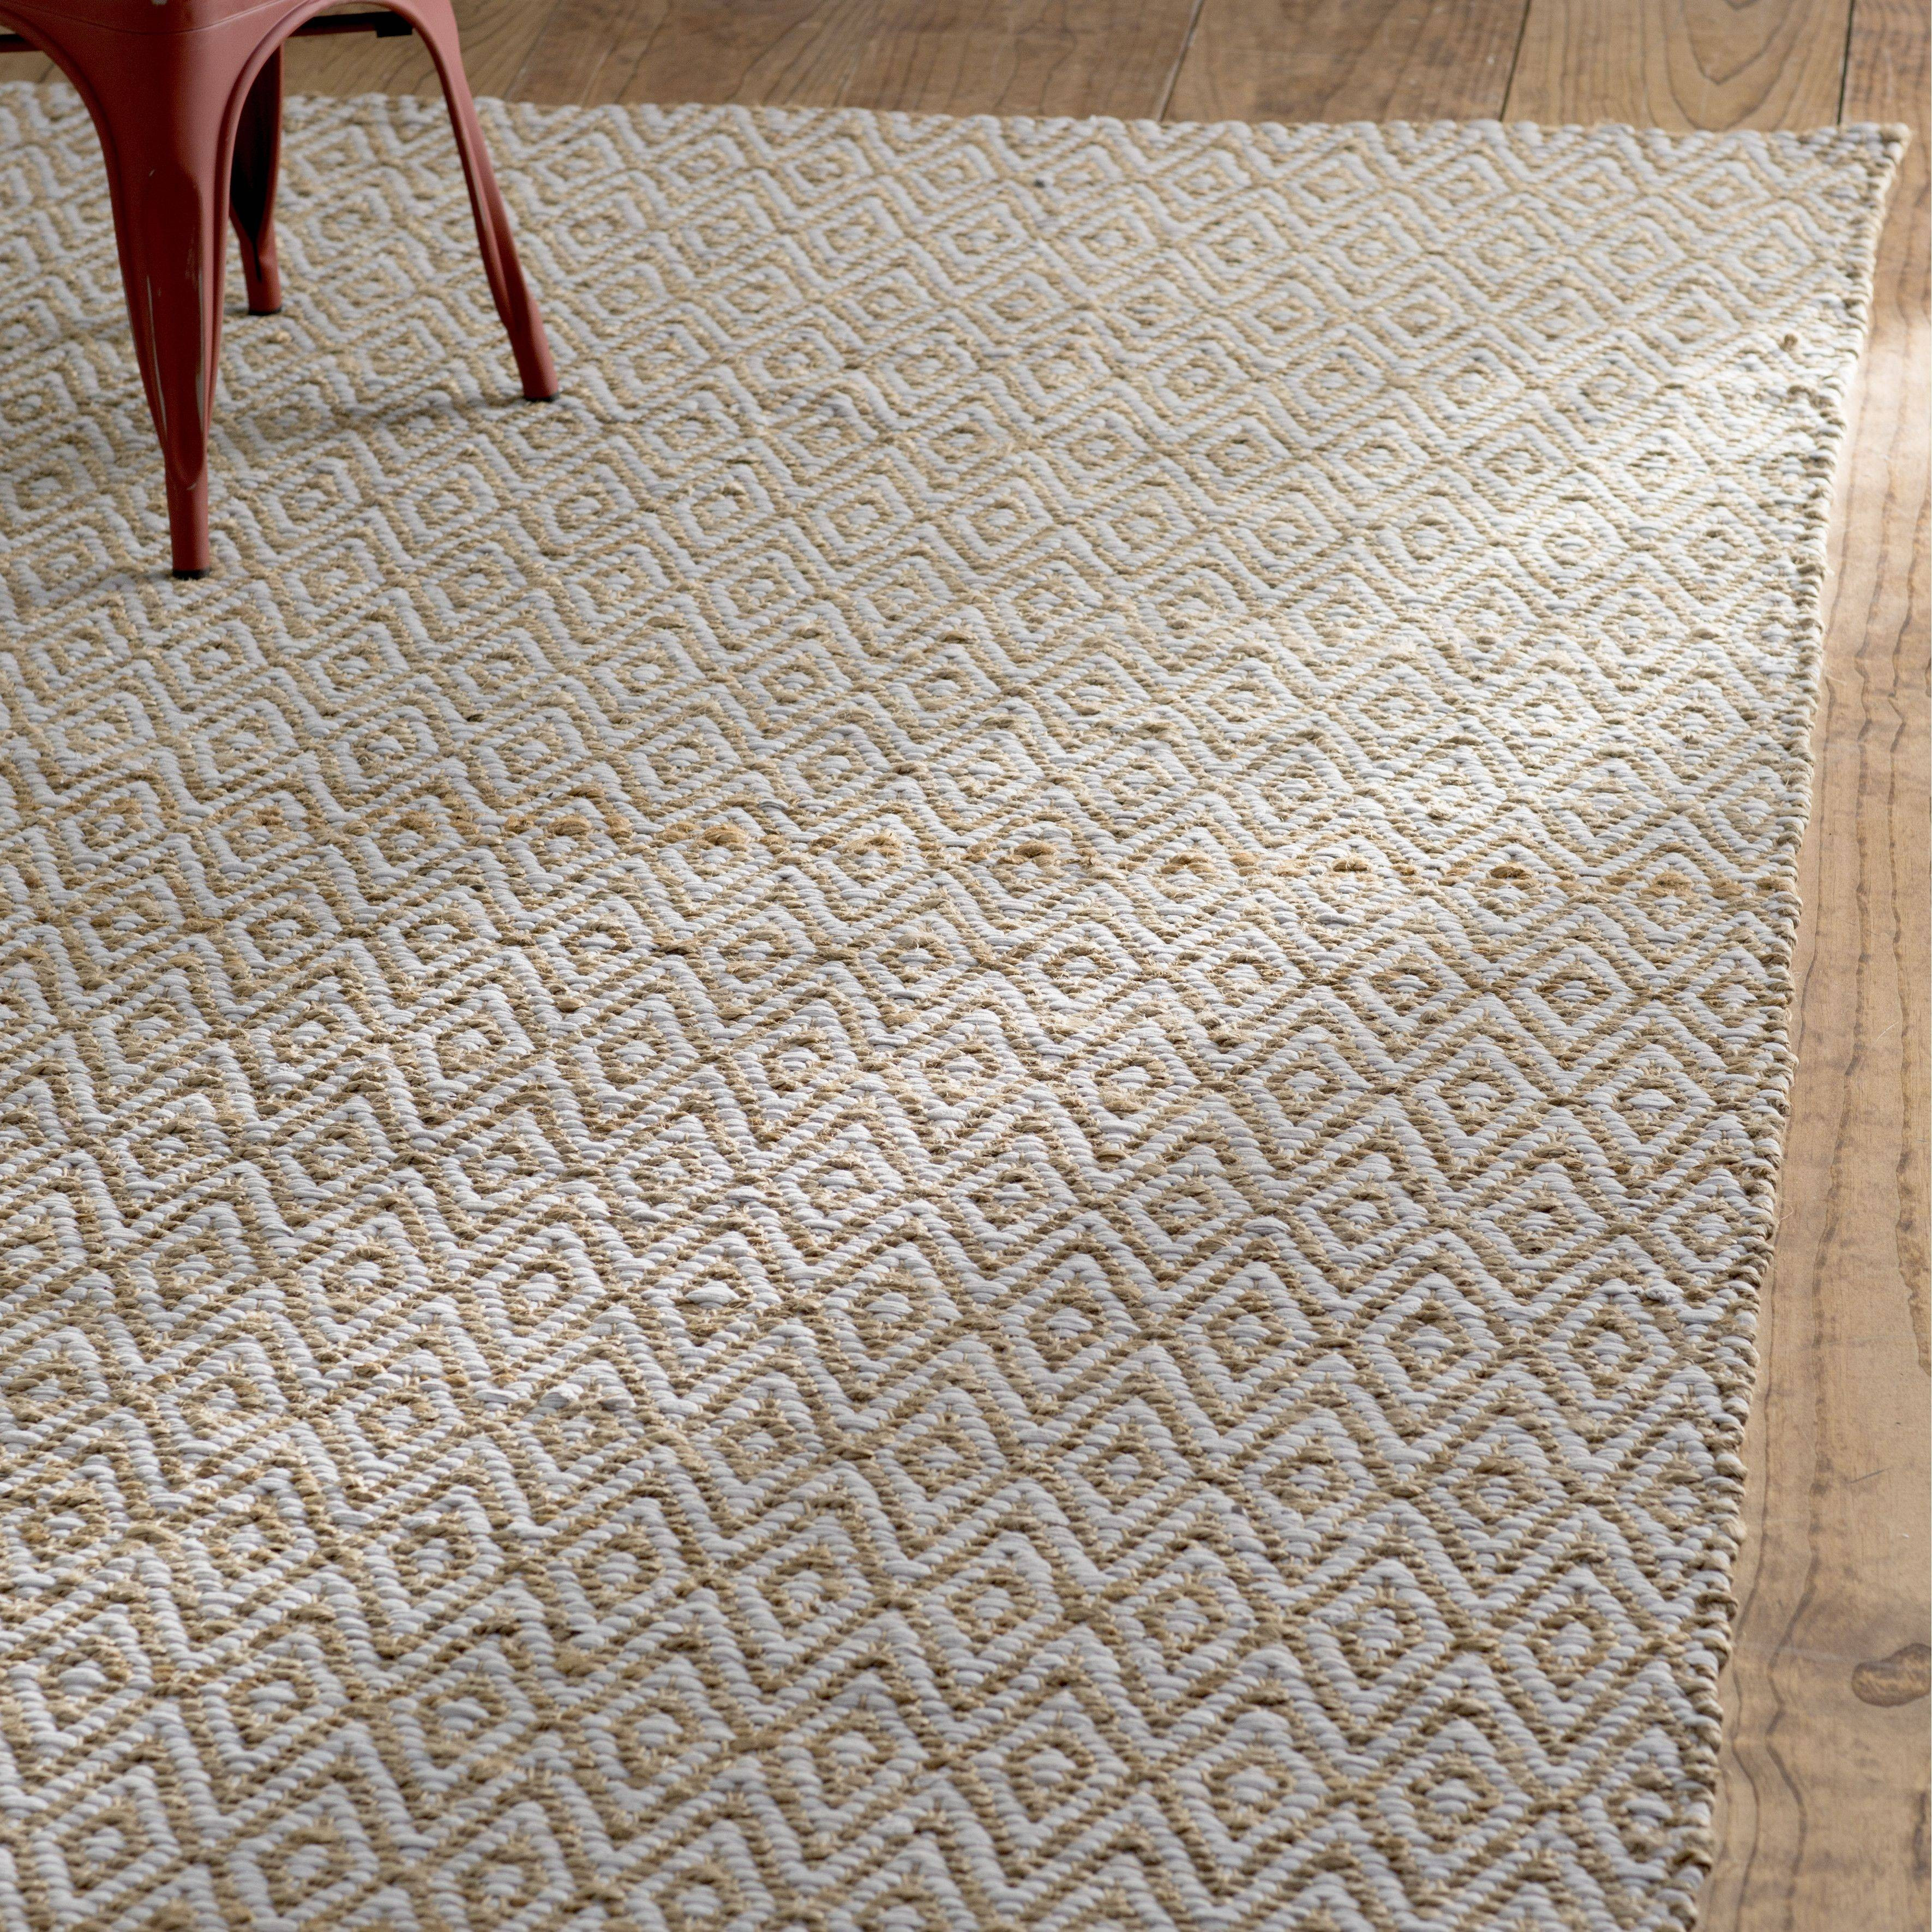 hardwood flooring dimensions of 7 x 14 area rug awesome furniture design brown rugs best patio rugs pertaining to 7 x 14 area rug awesome furniture design brown rugs best patio rugs 0d awesome best wamconvention